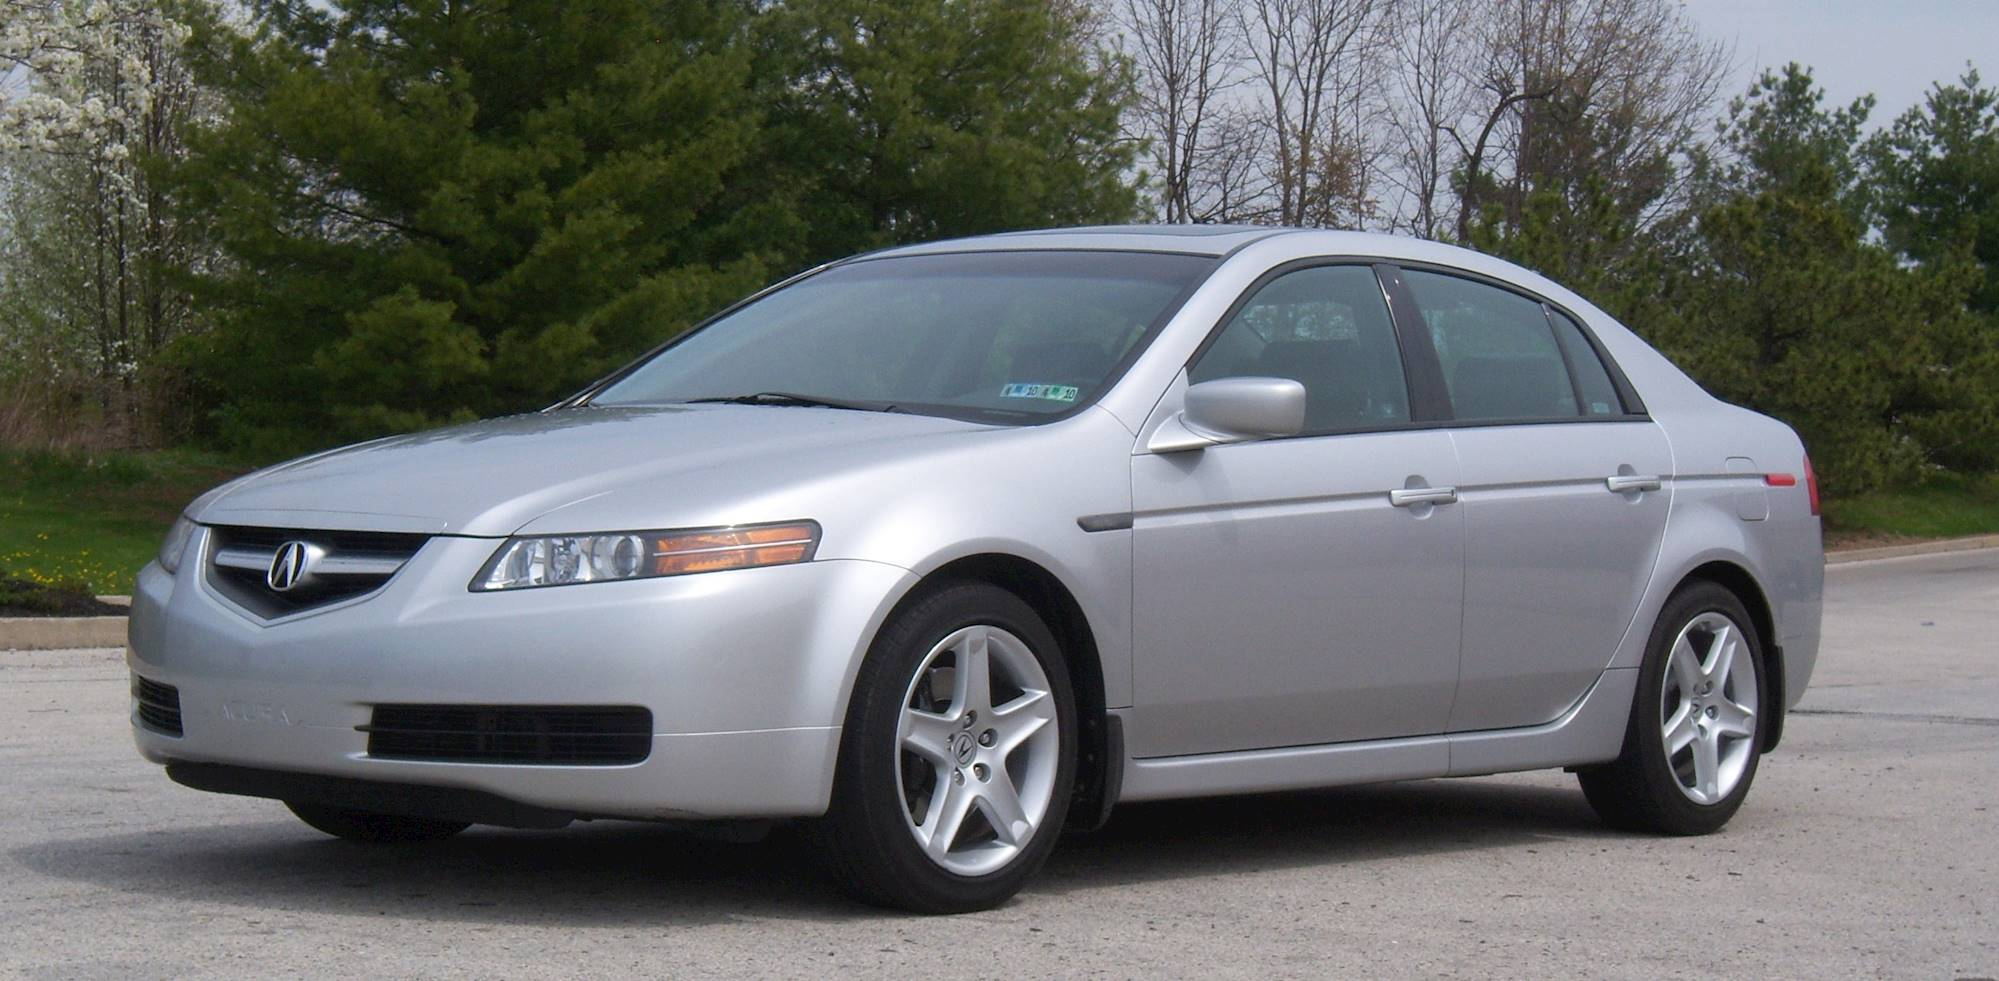 2006 Acura TL Base Sedan 3 2L V6 auto